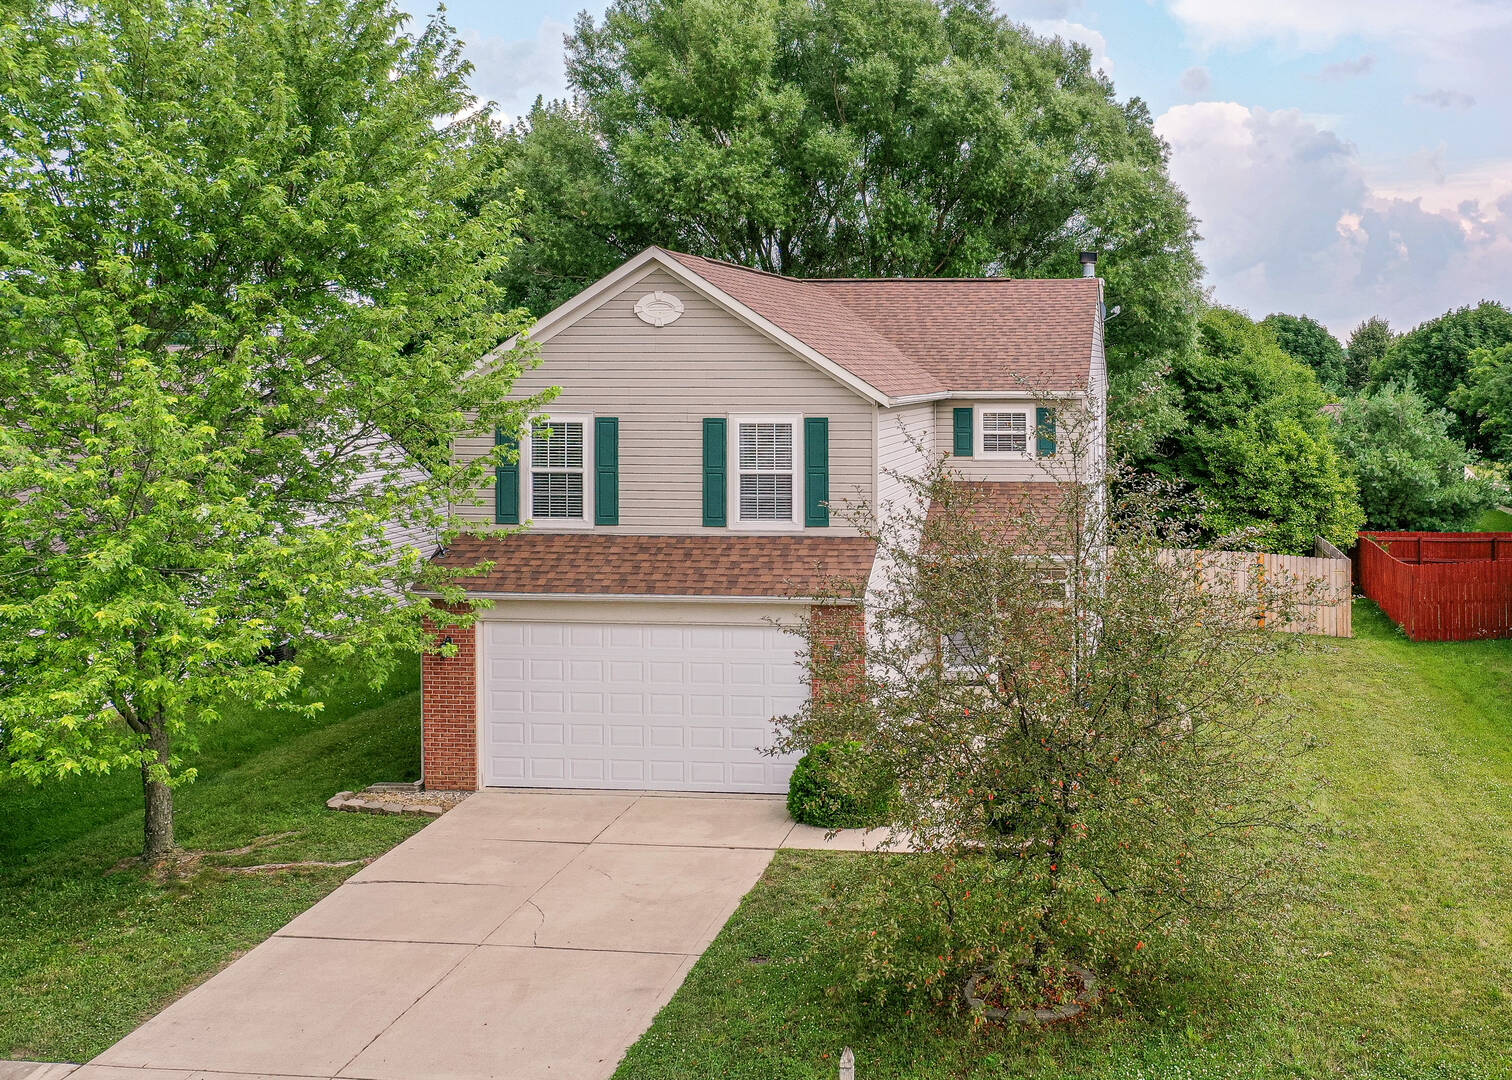 13247 Ashview Dr. Fishers, IN 46038